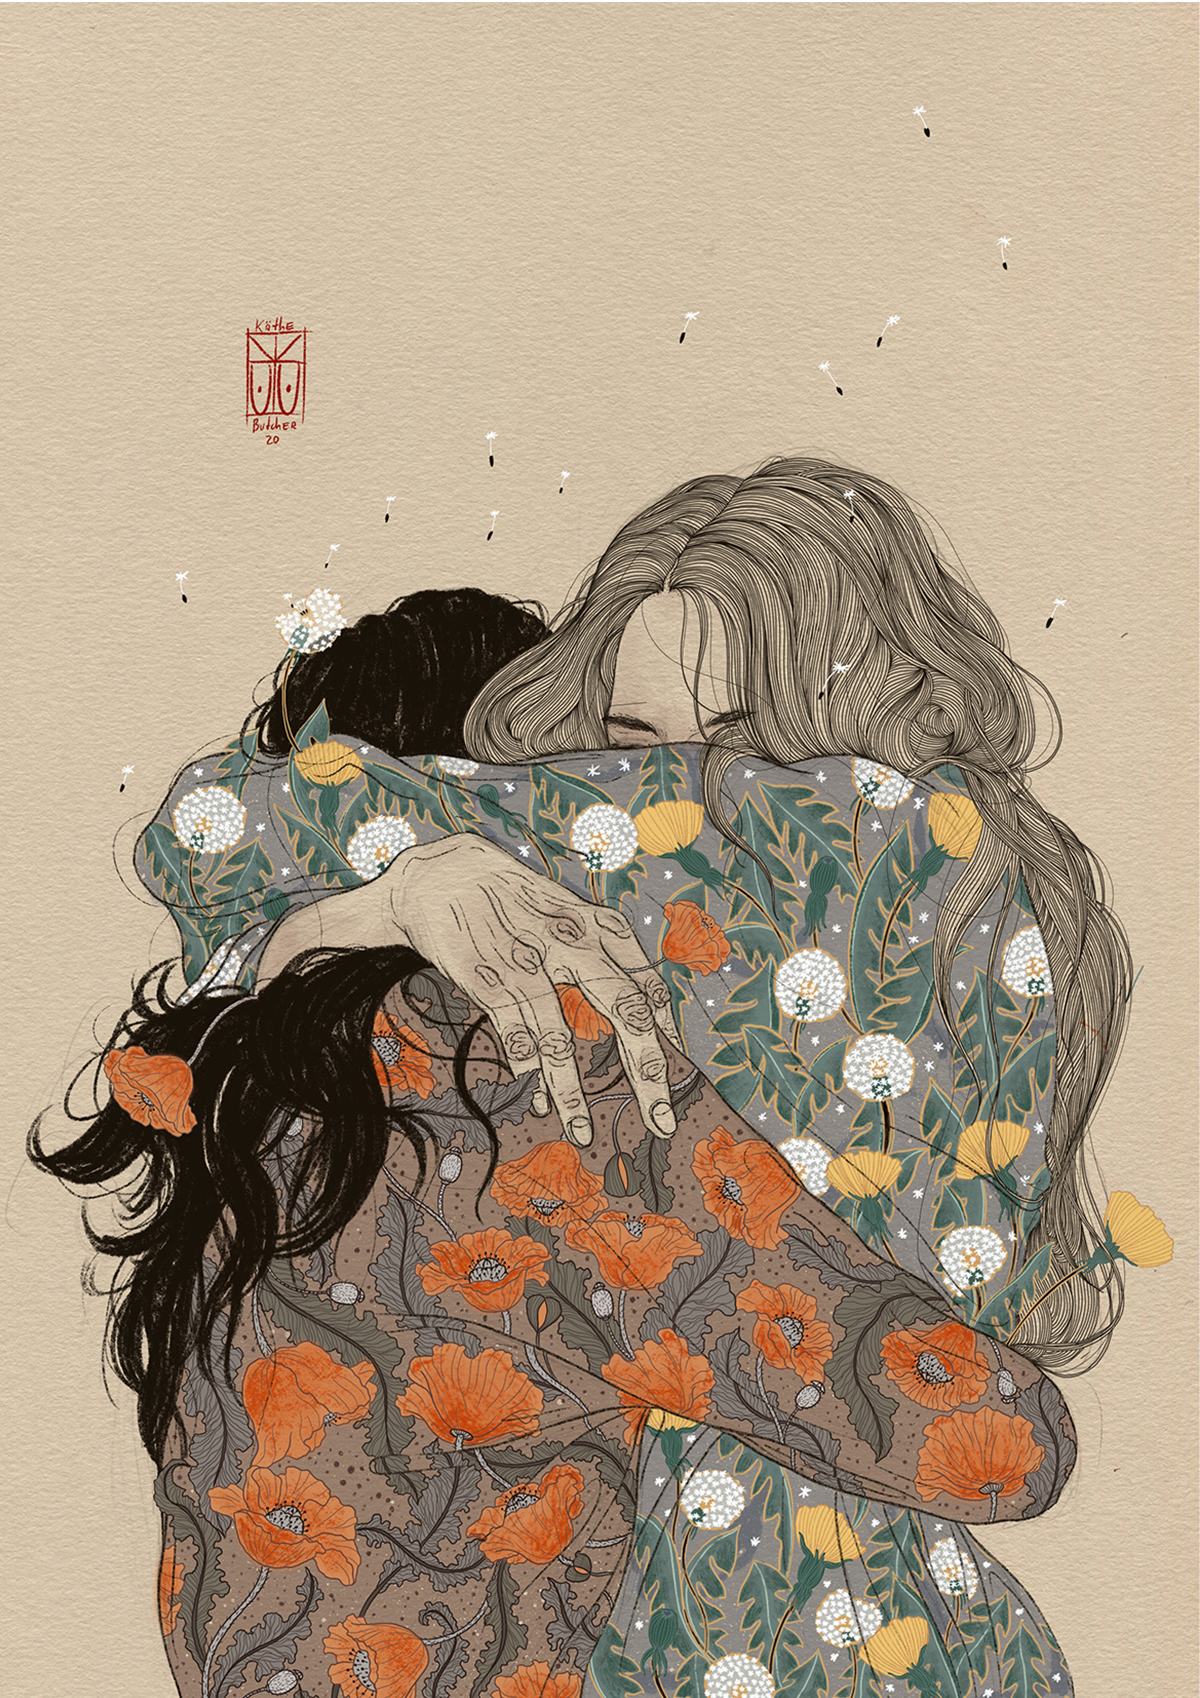 Lyrical Illustrations by Käthe Butcher Explore Femininity, Emotion, and Human Intimacy